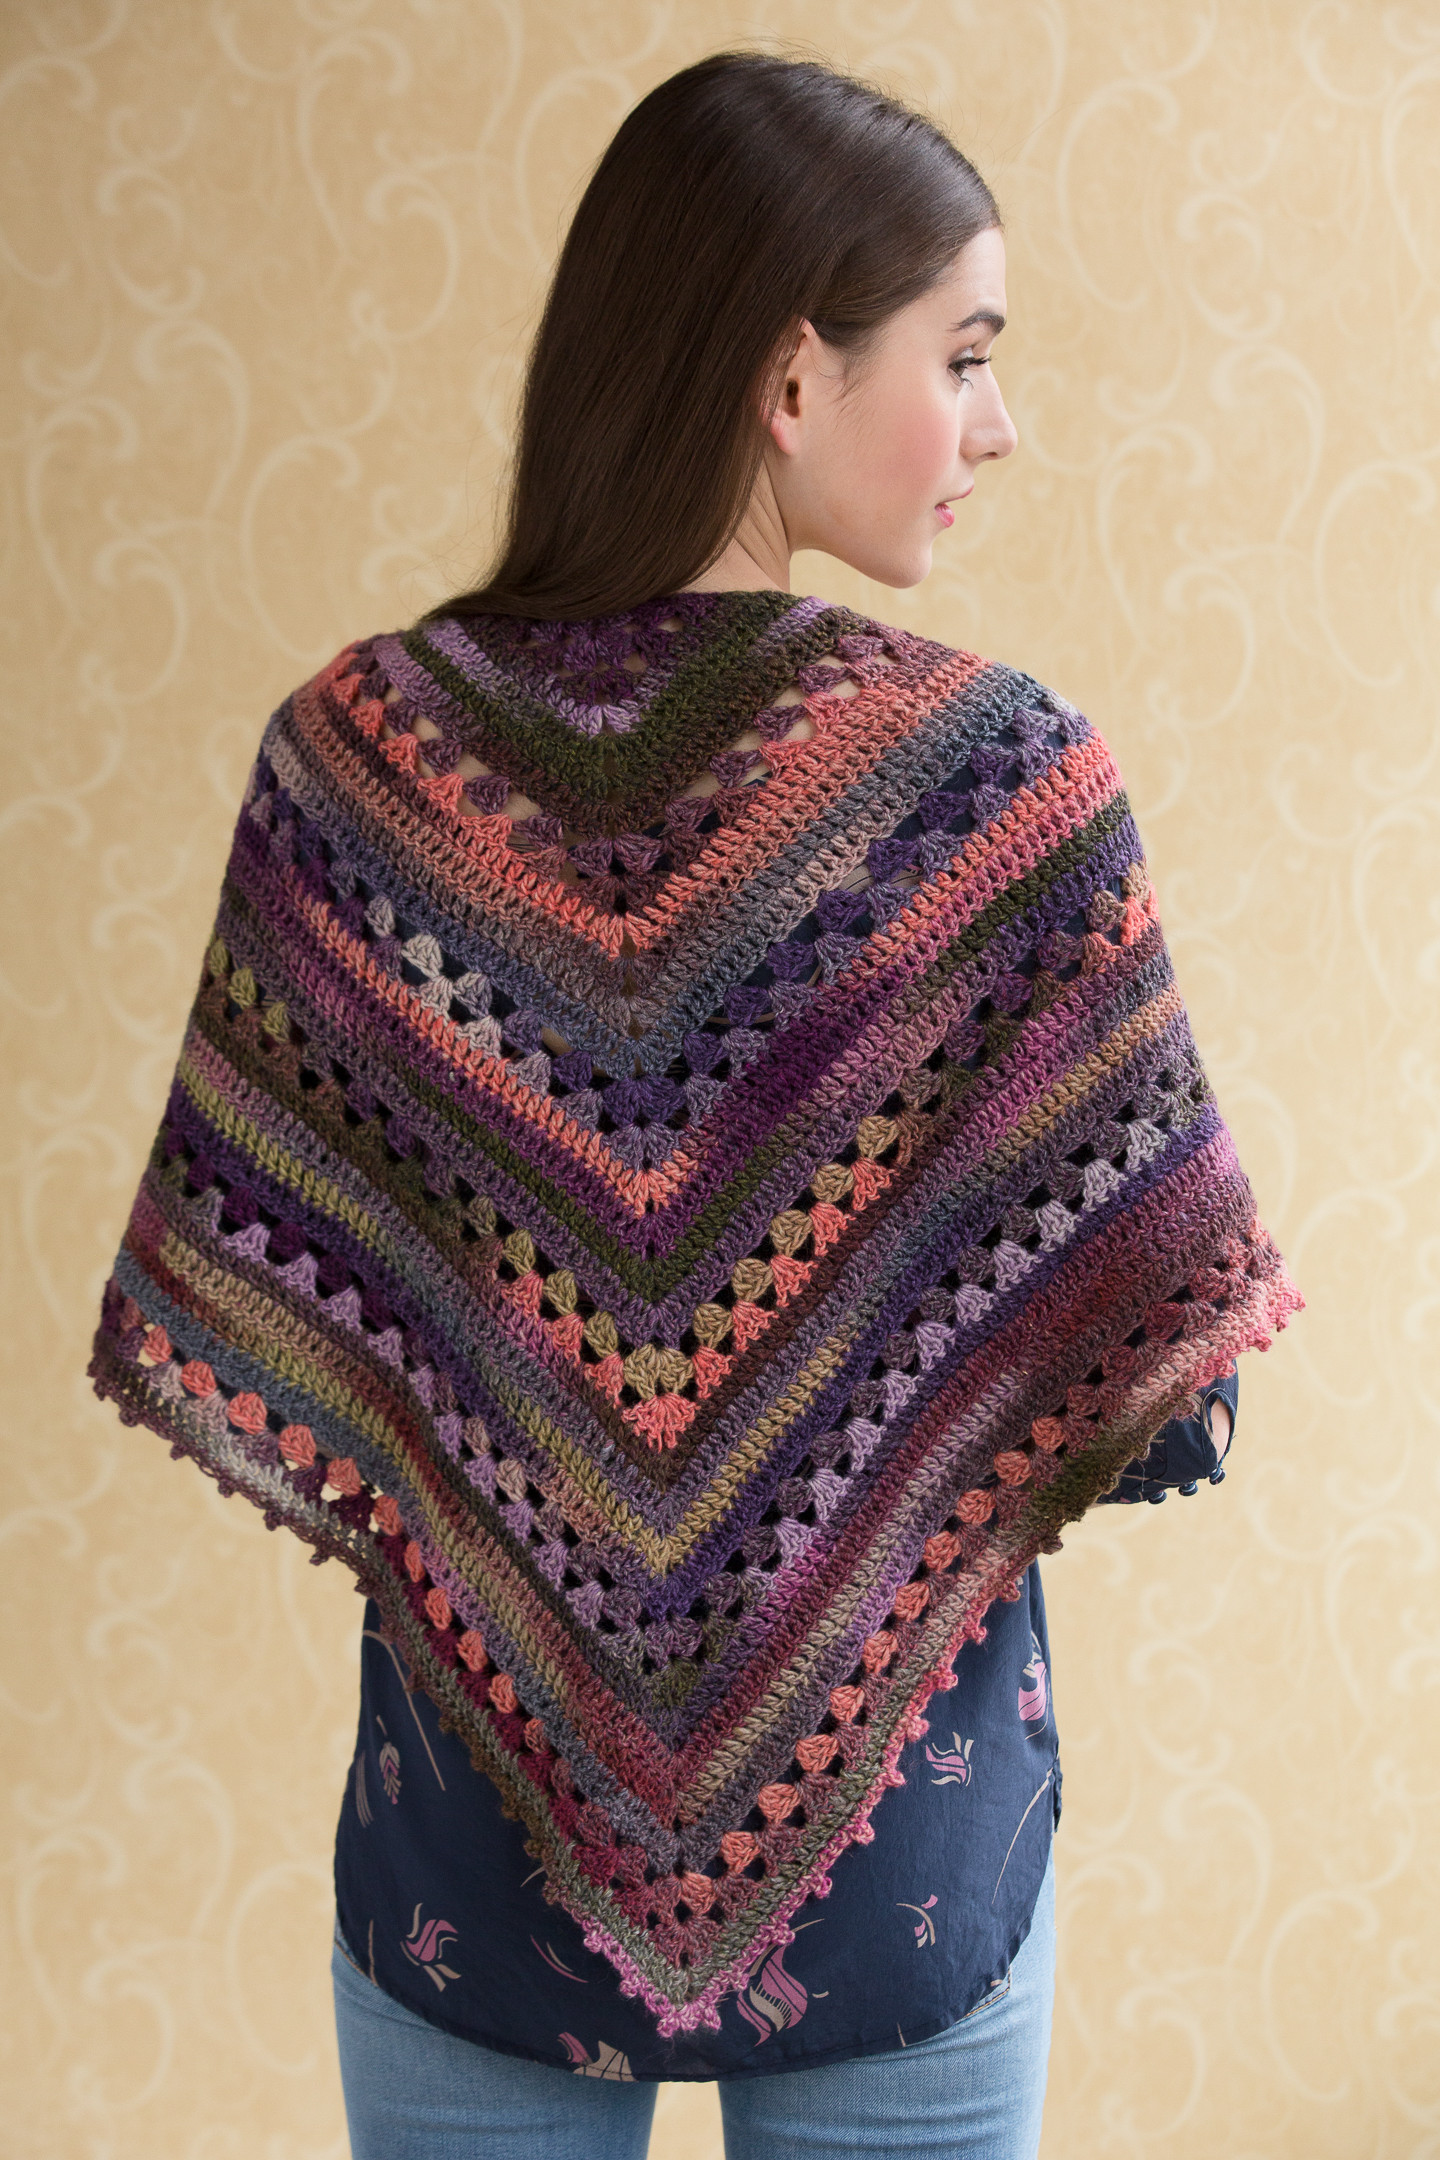 Free Crochet Shawl Patterns Best Of Simple Crocheted Shawl In Navajo Of Awesome 46 Models Free Crochet Shawl Patterns